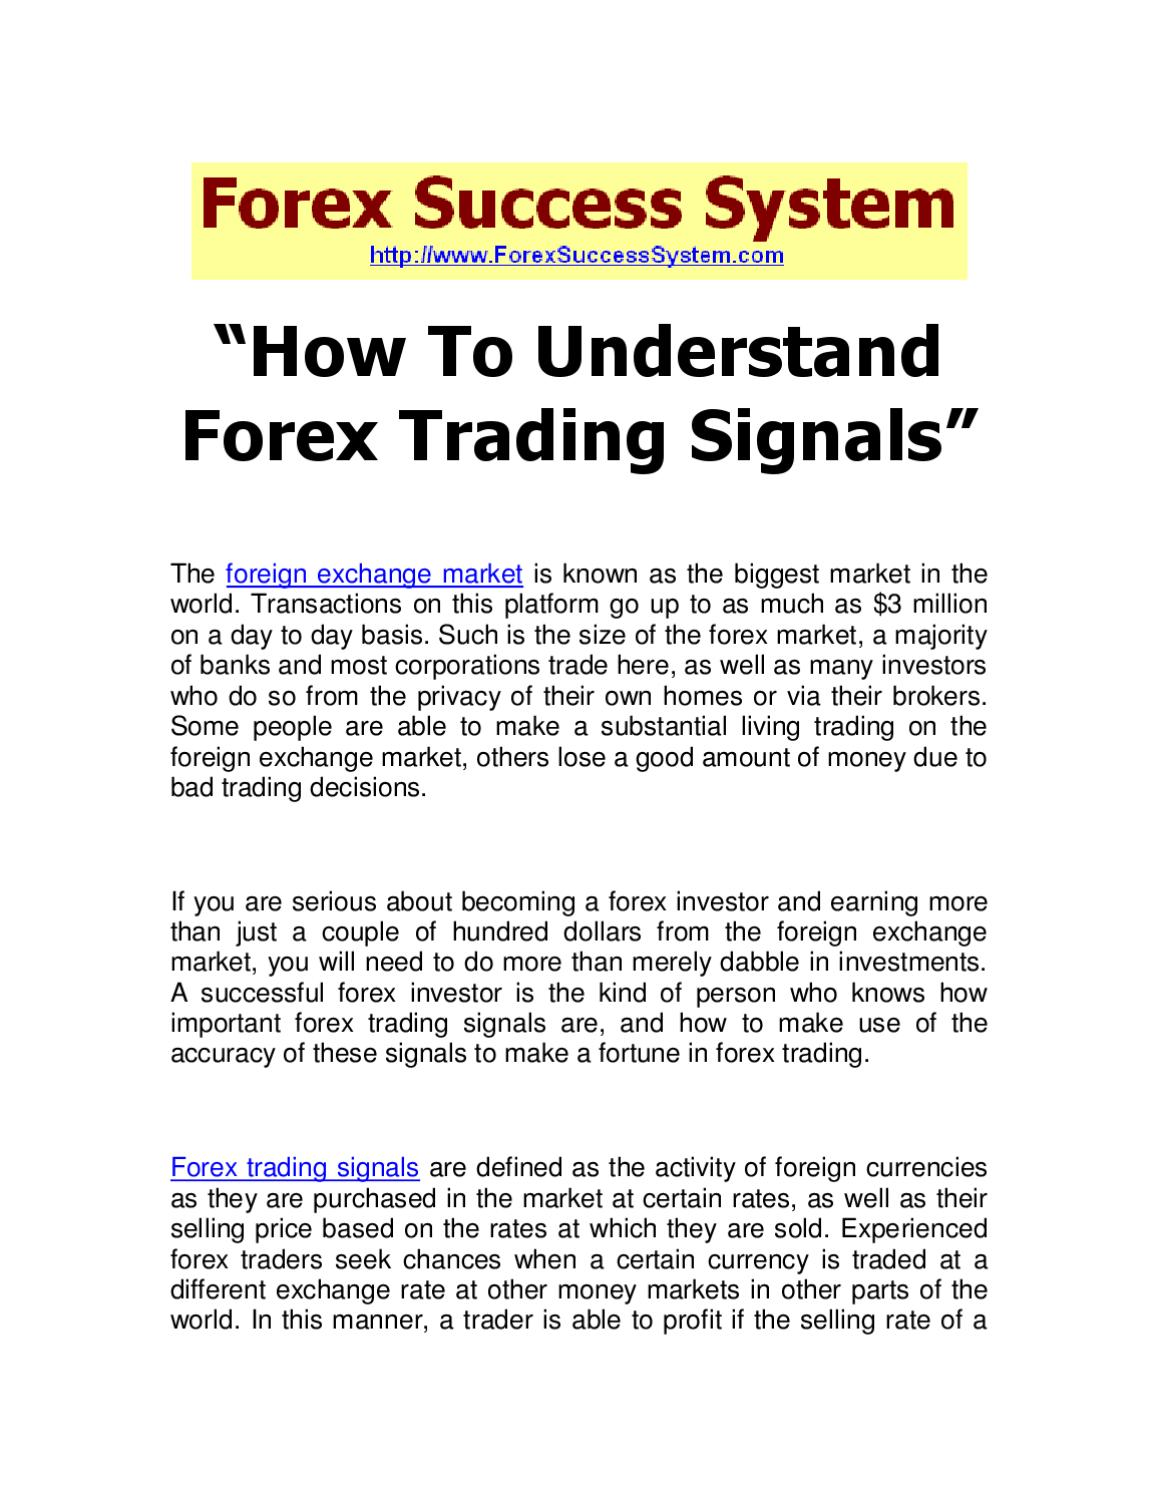 How to understand forex